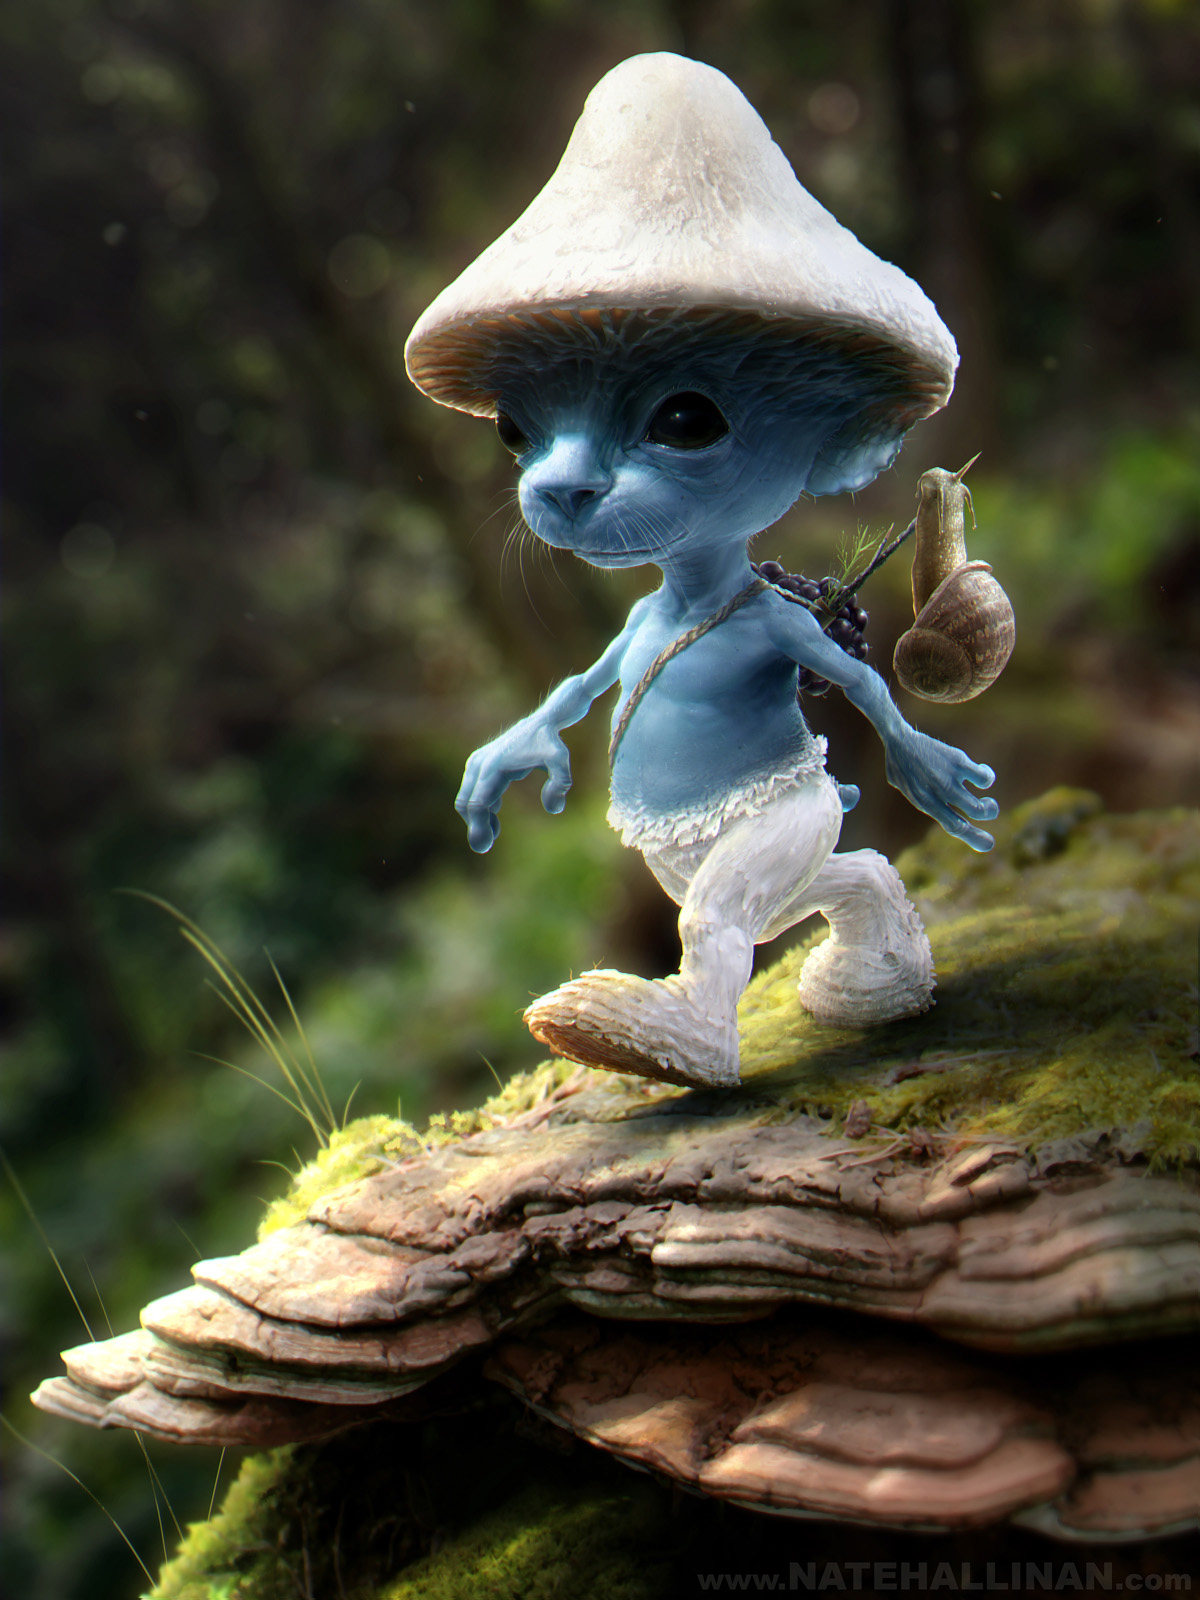 http://coolvibe.com/wp-content/uploads/2011/09/3d-art-Nate-Hallinan-Smurf-Sighting.jpg